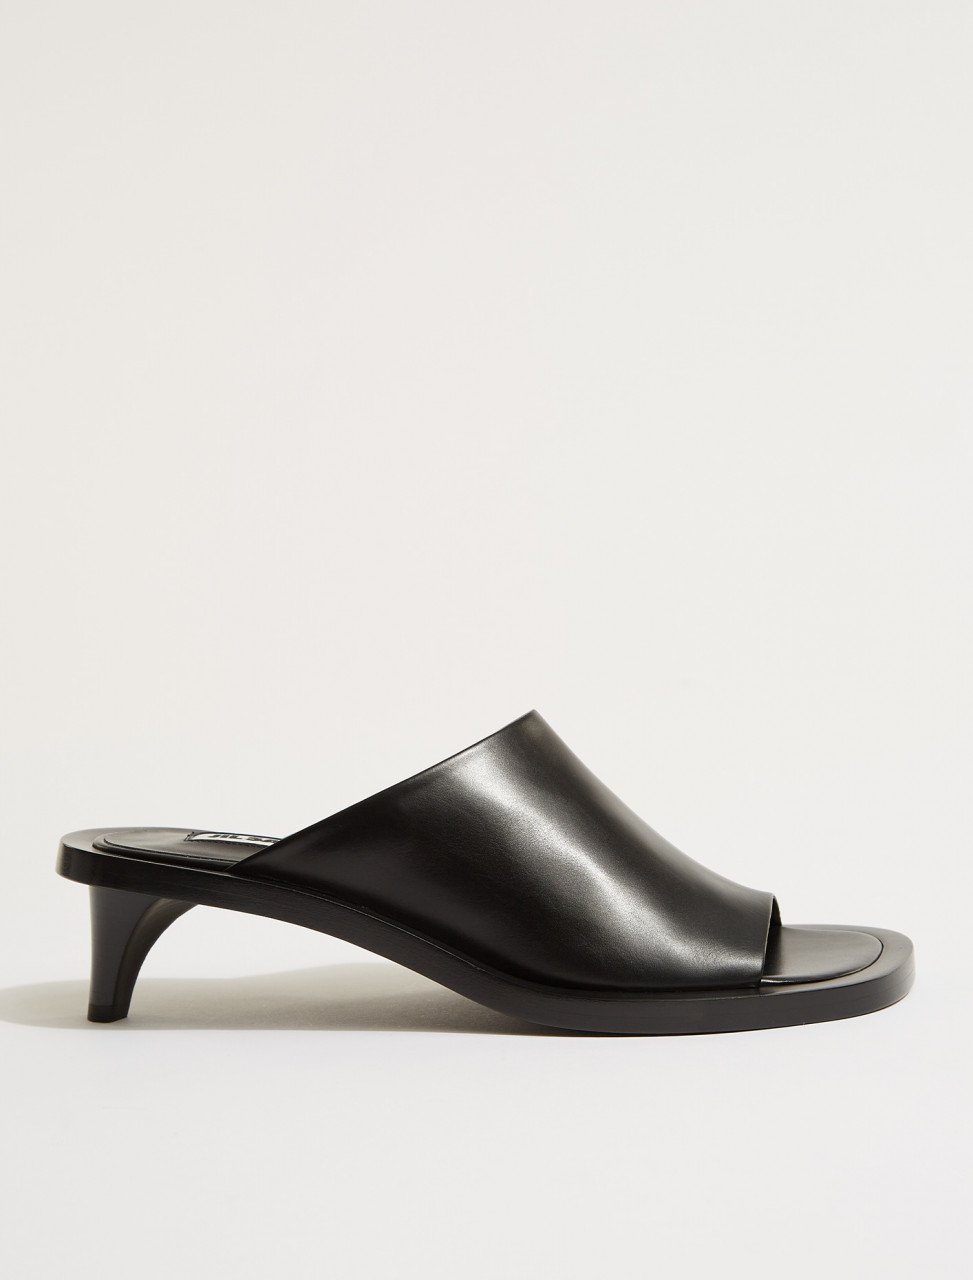 JS36026A-13030-001 JIL SANDER OPEN TOE MULES IN BLACK